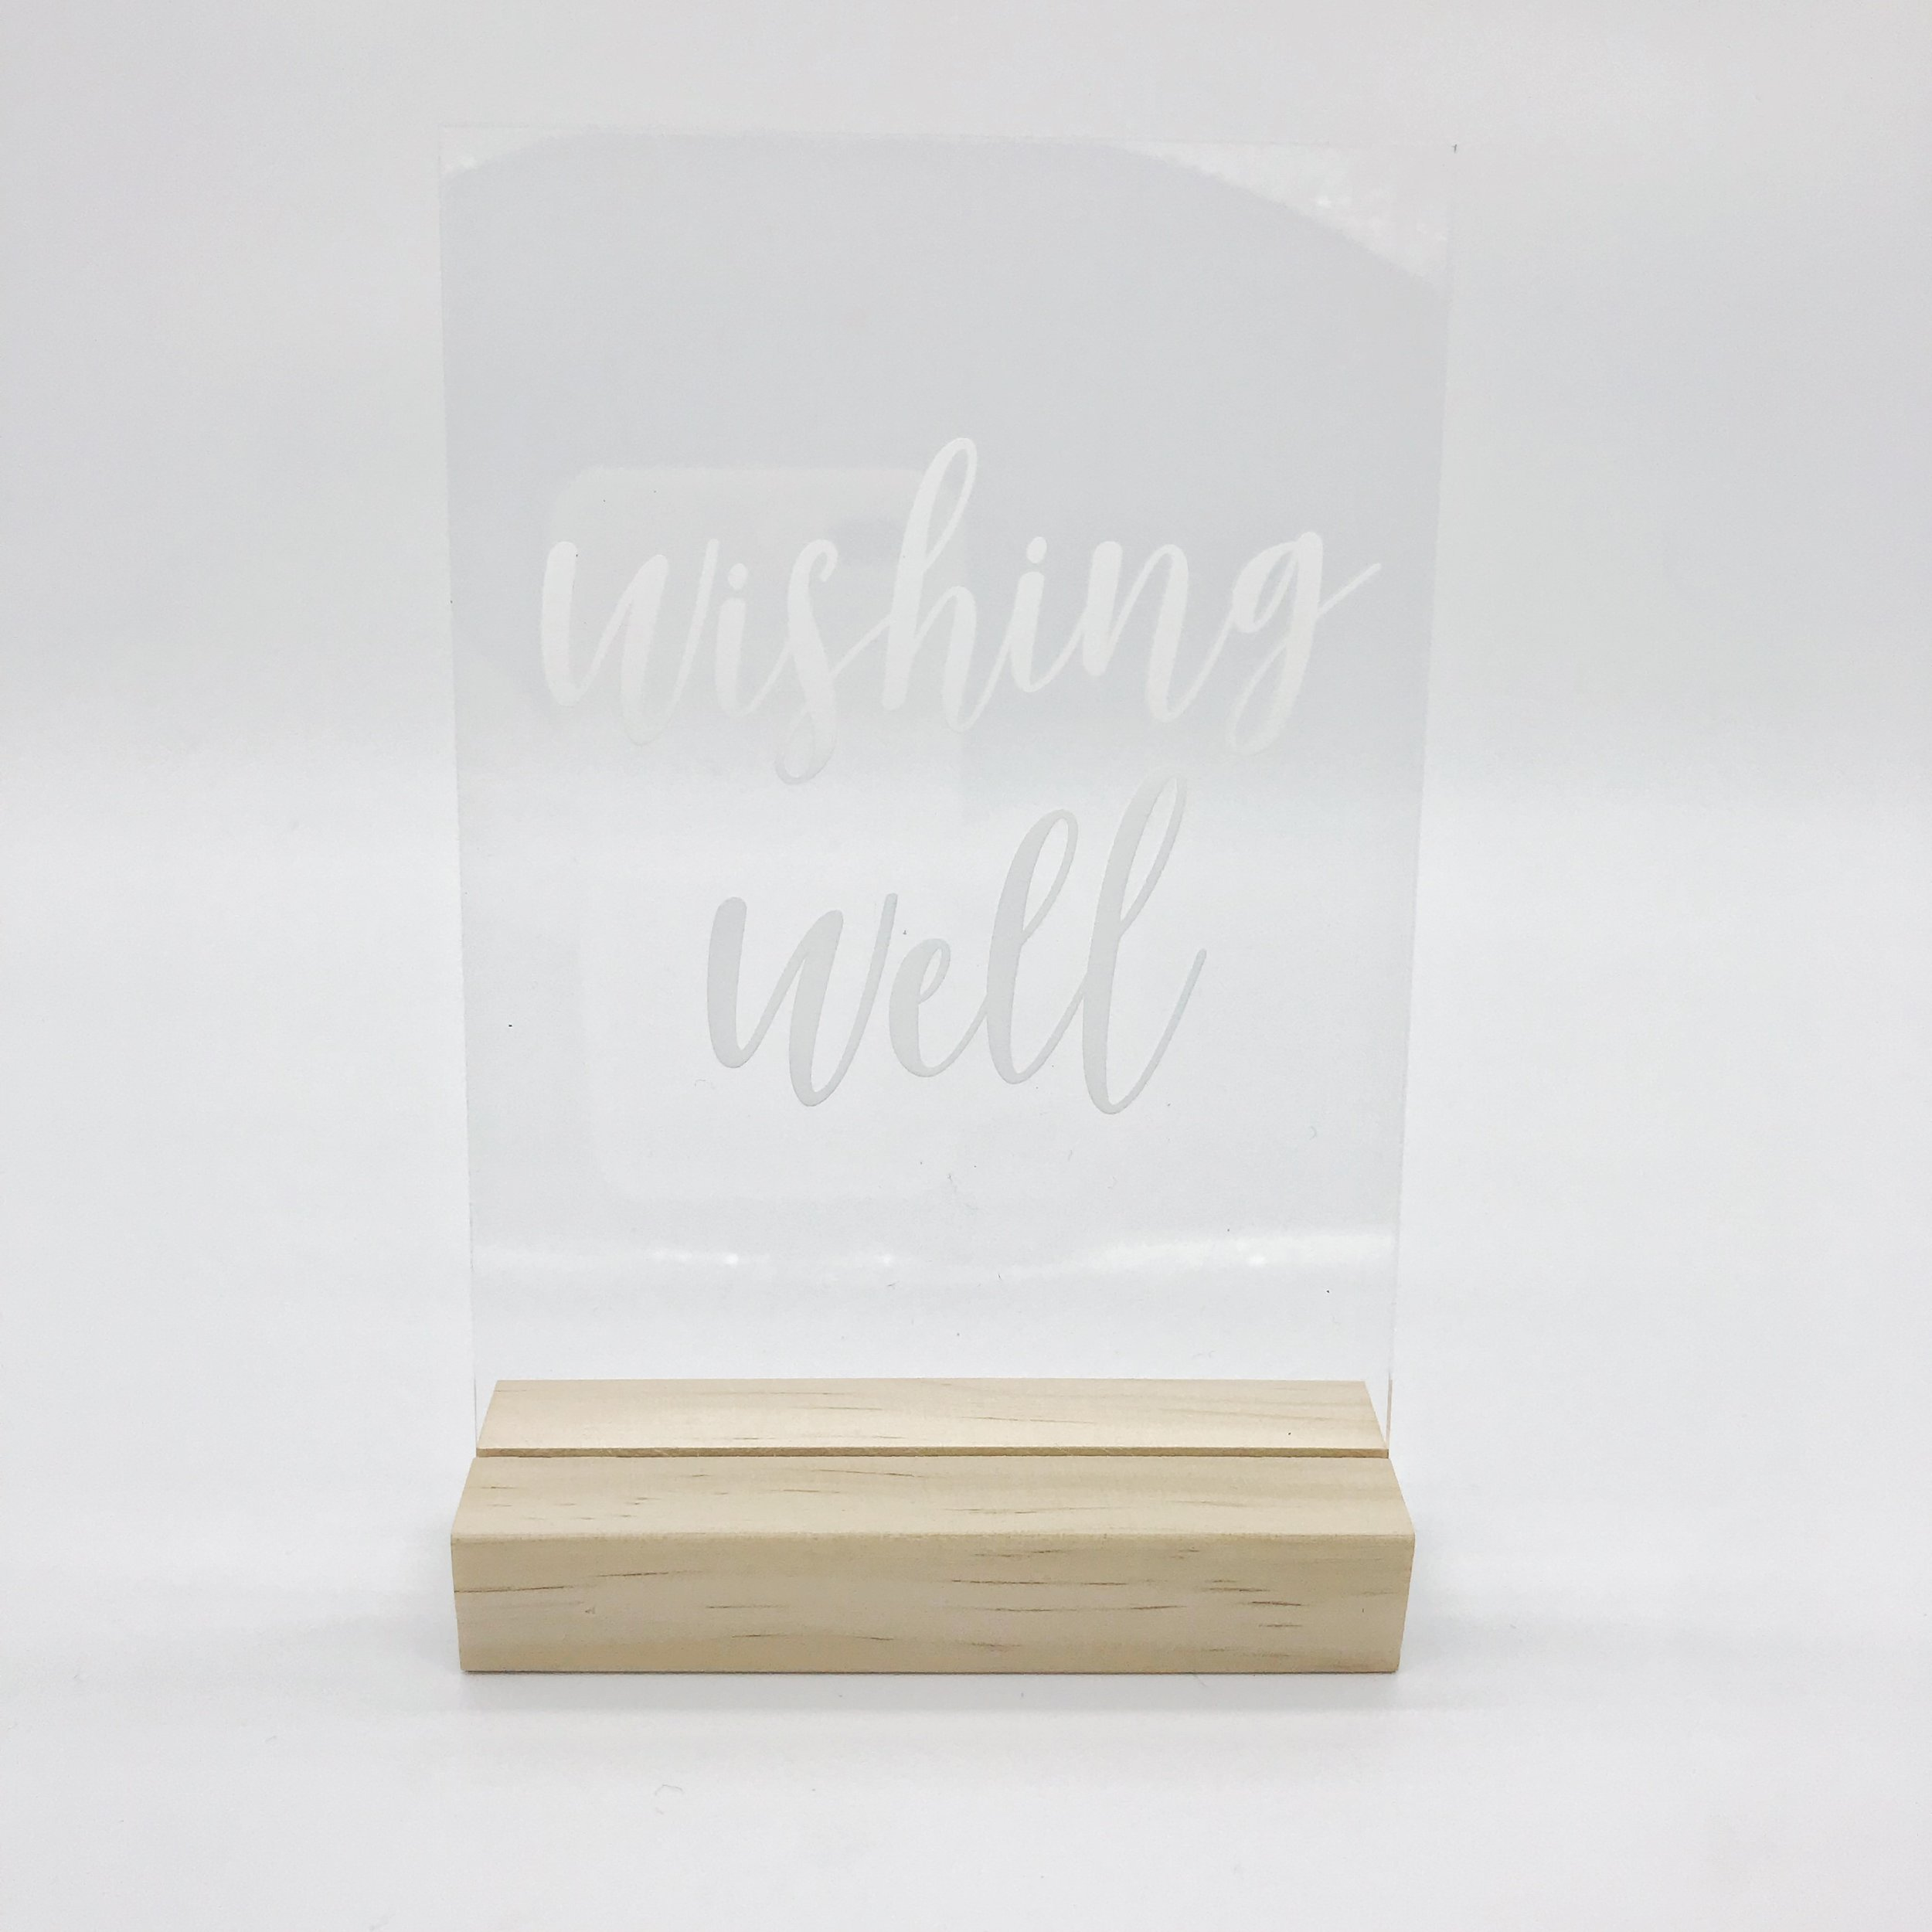 Acrylic 'wishing well' sign and stand  Price: $6.00  Qty: 1